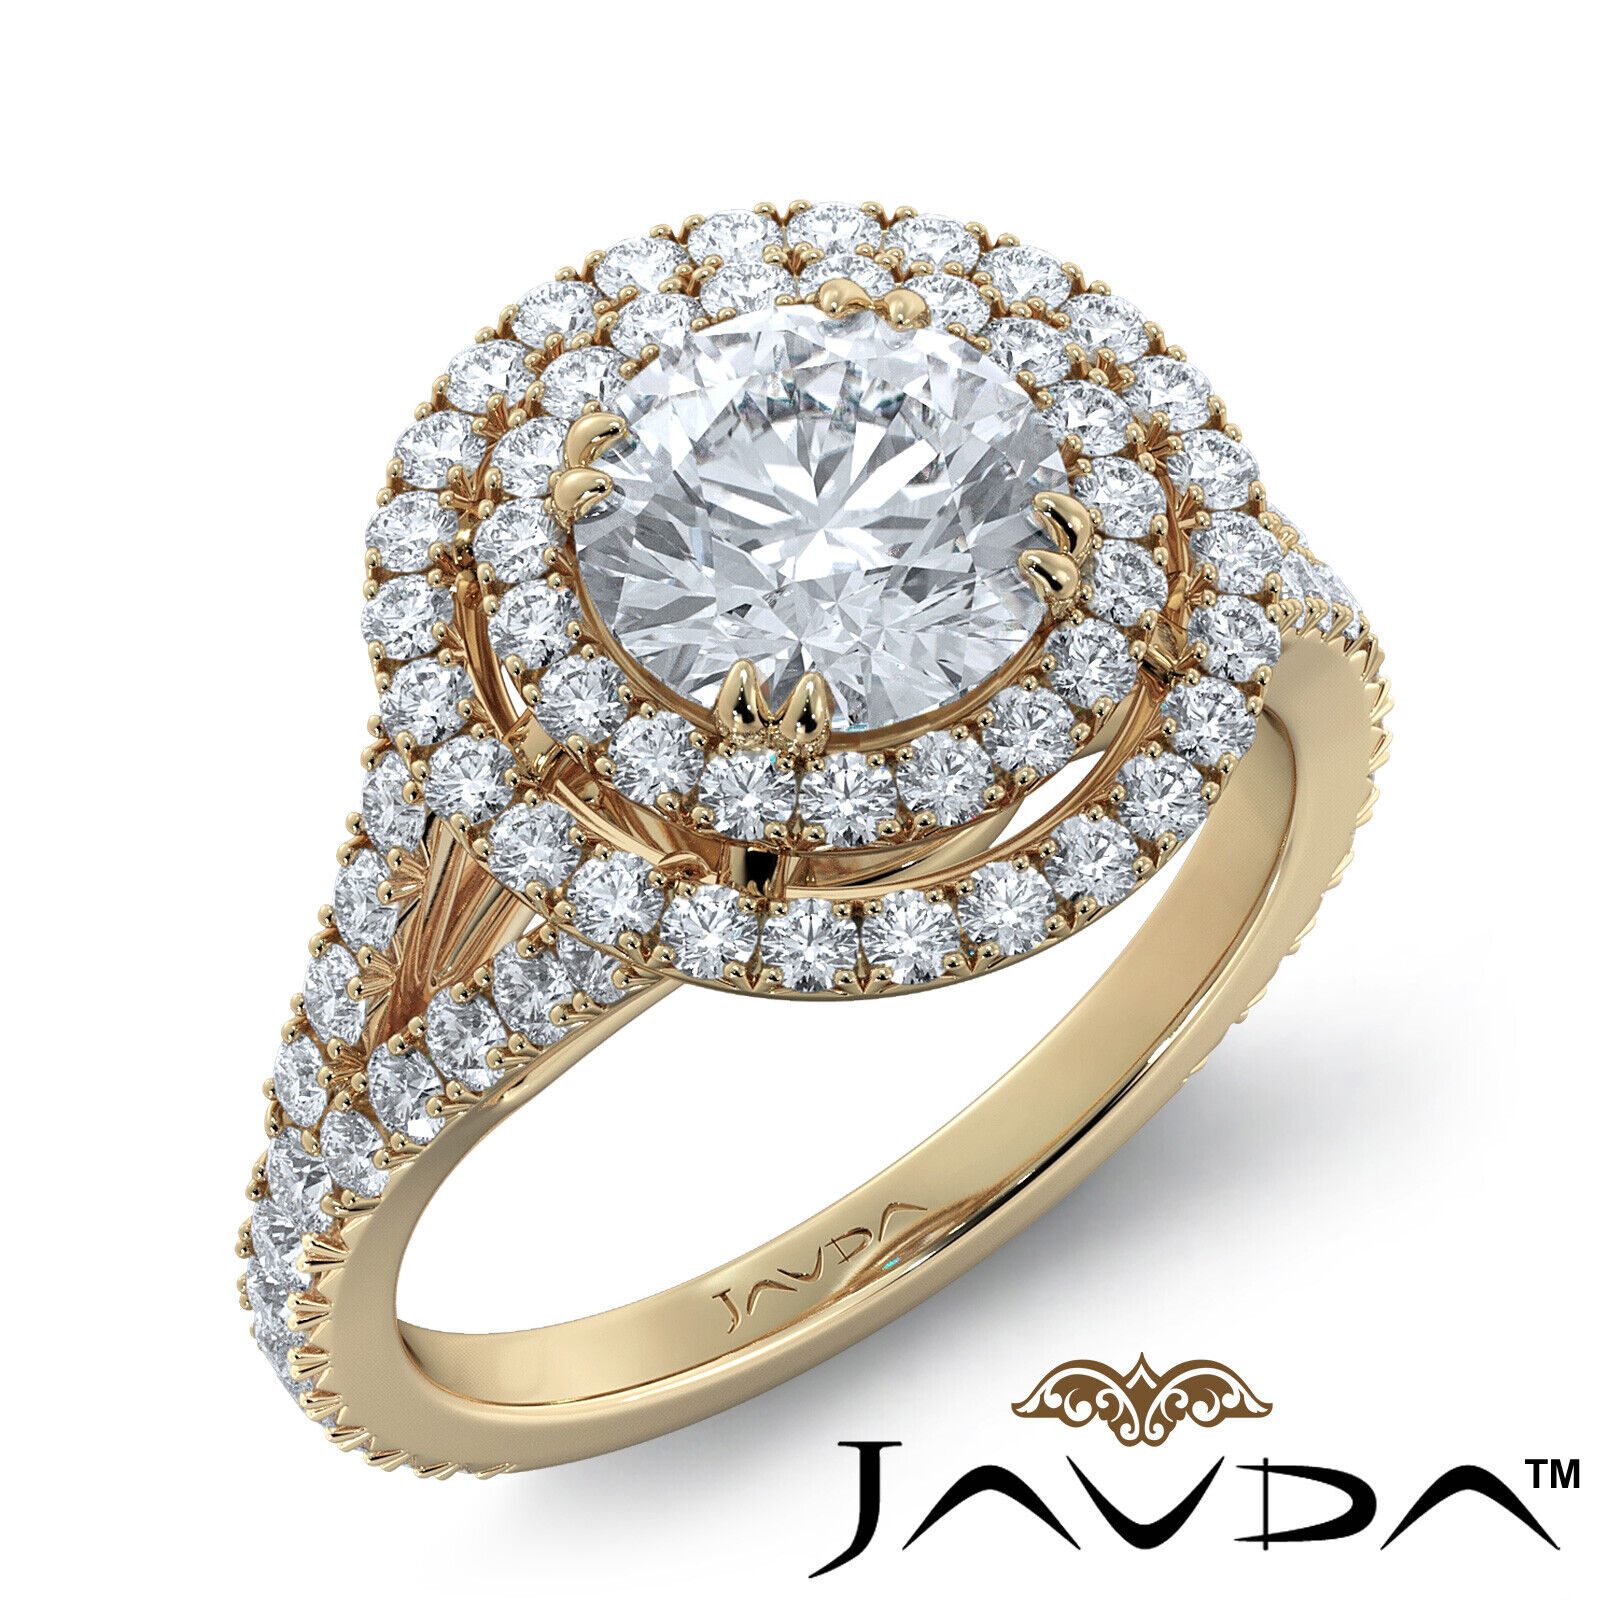 2.05ct French Pave Gala Halo Round Diamond Engagement Ring GIA F-VVS1 White Gold 6